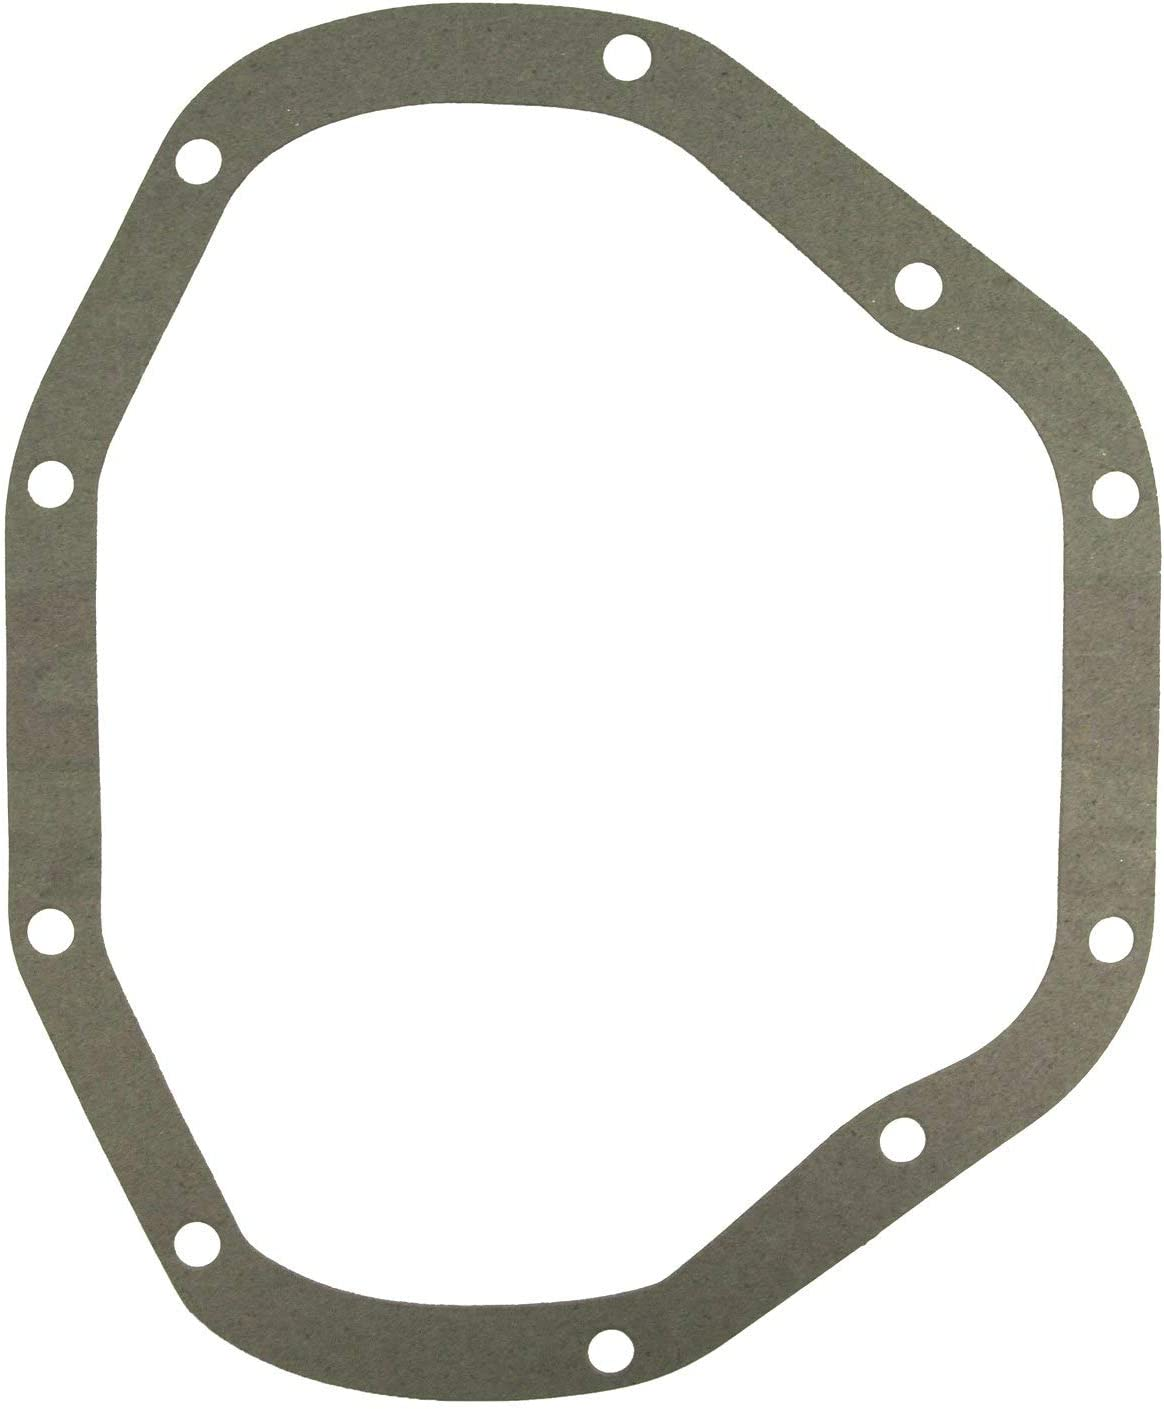 CFR Performance HZ-7518 Popular standard - Differential Cover Gifts Gasket